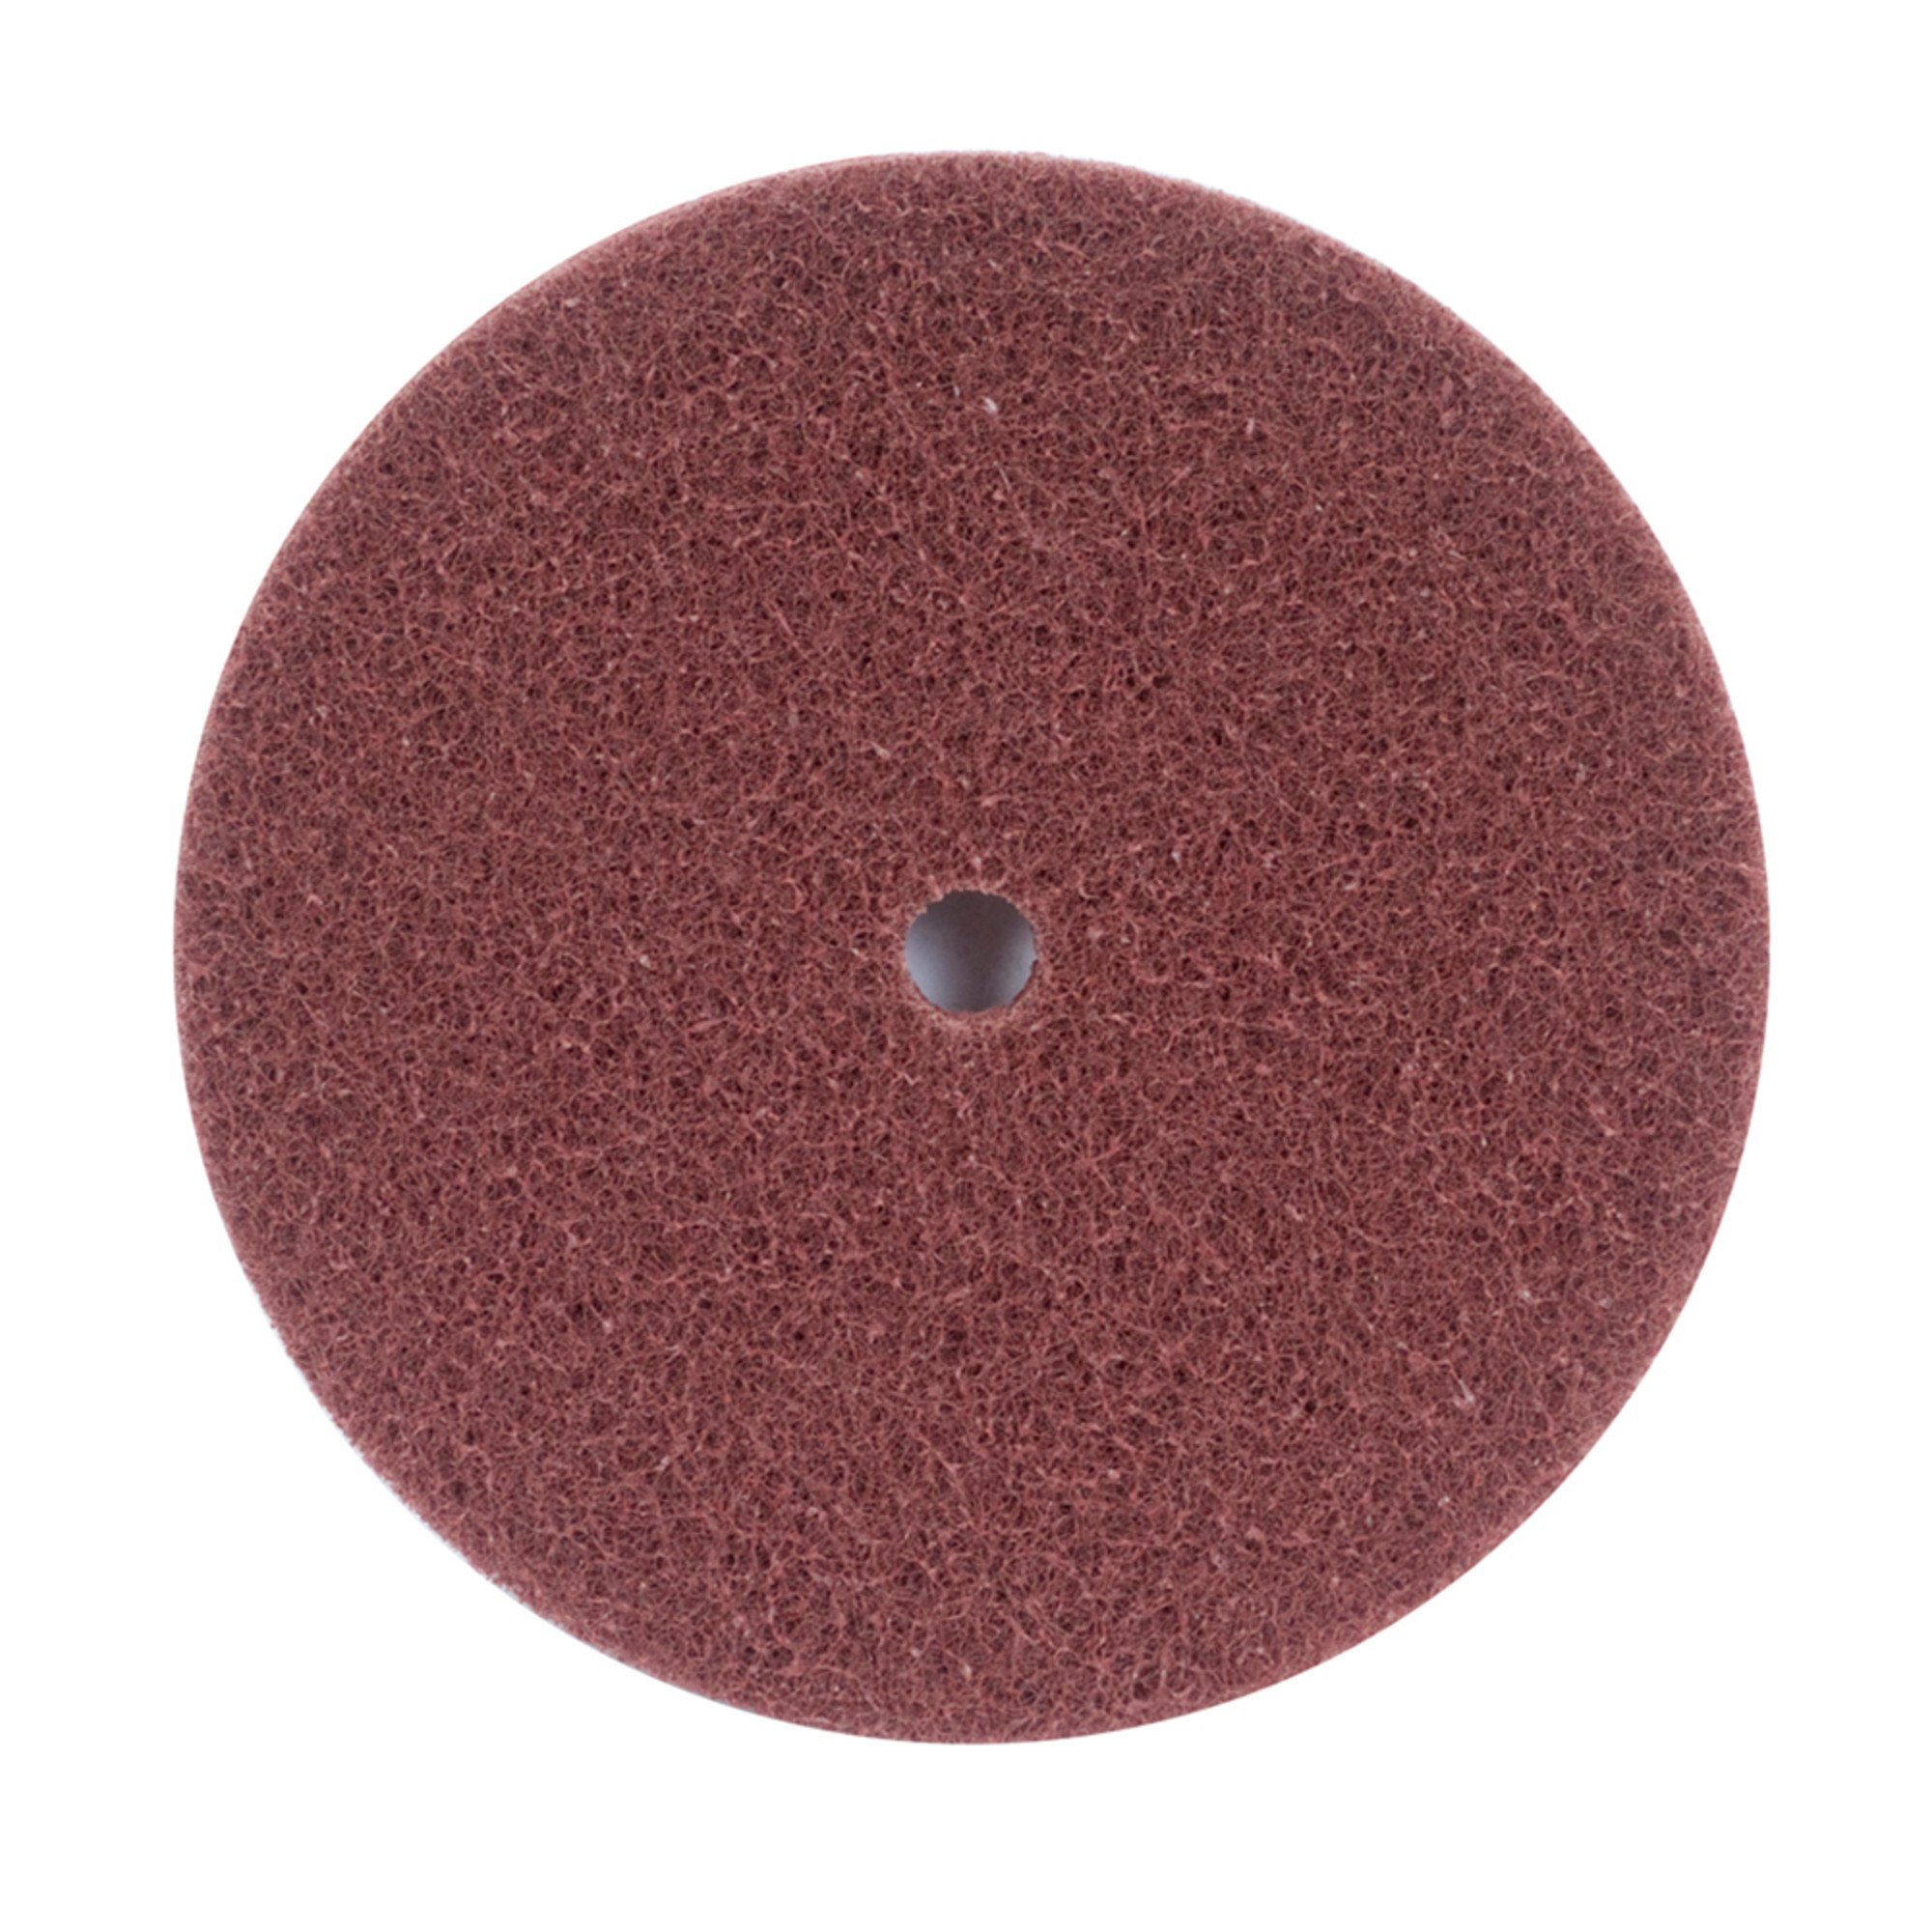 St Gobain-544 - A/O High Strength Buffing Discs 8, Sold As 1 Each